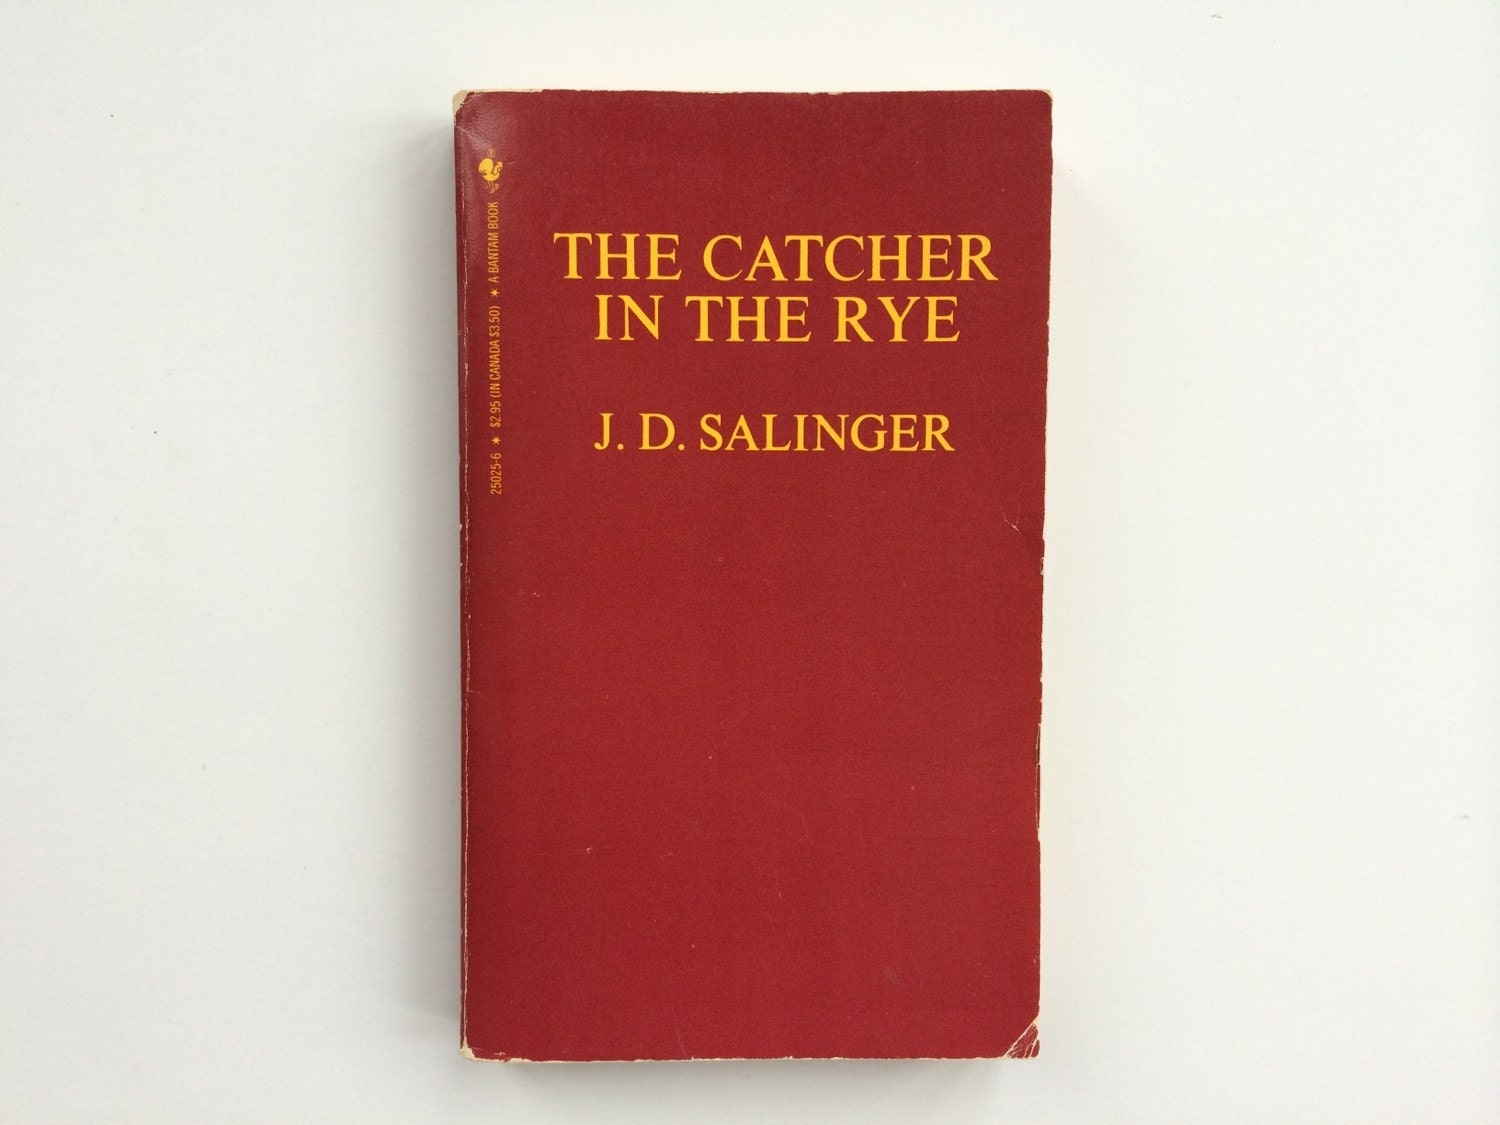 a review of j d salingers the catcher in the rye Paperback book the catcher in the rye by jd salinger at indigoca,  canada's largest bookstore  before i read this book i read all of the mixed  reviews.